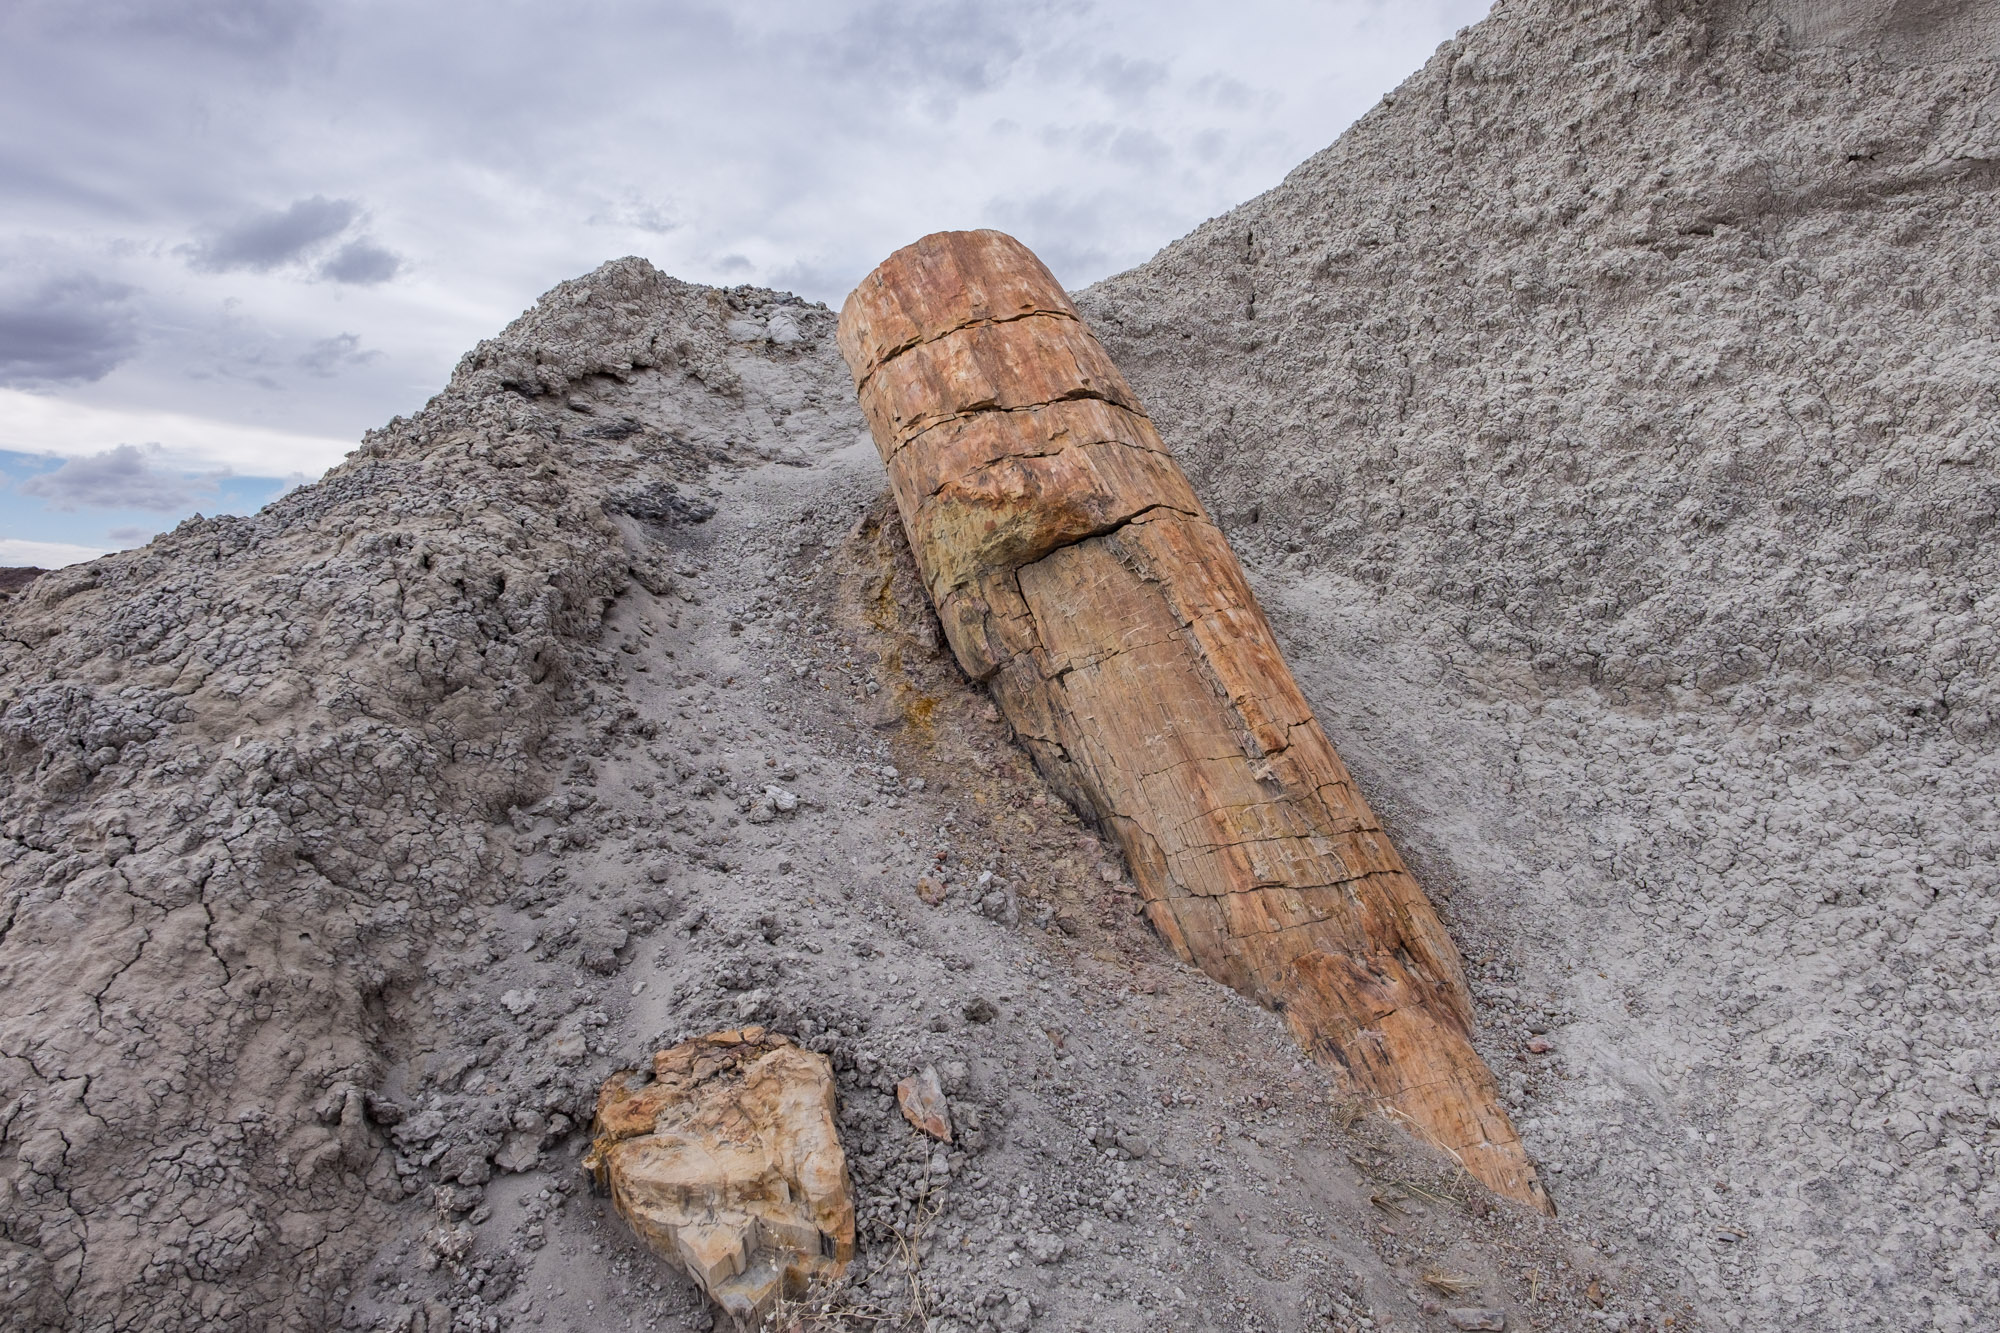 We hiked to a distant area of the park to find some petroglyphs and also stumbled upon this newly visible log. Erosion has exposed this log after hundreds of millions of years of being buried.